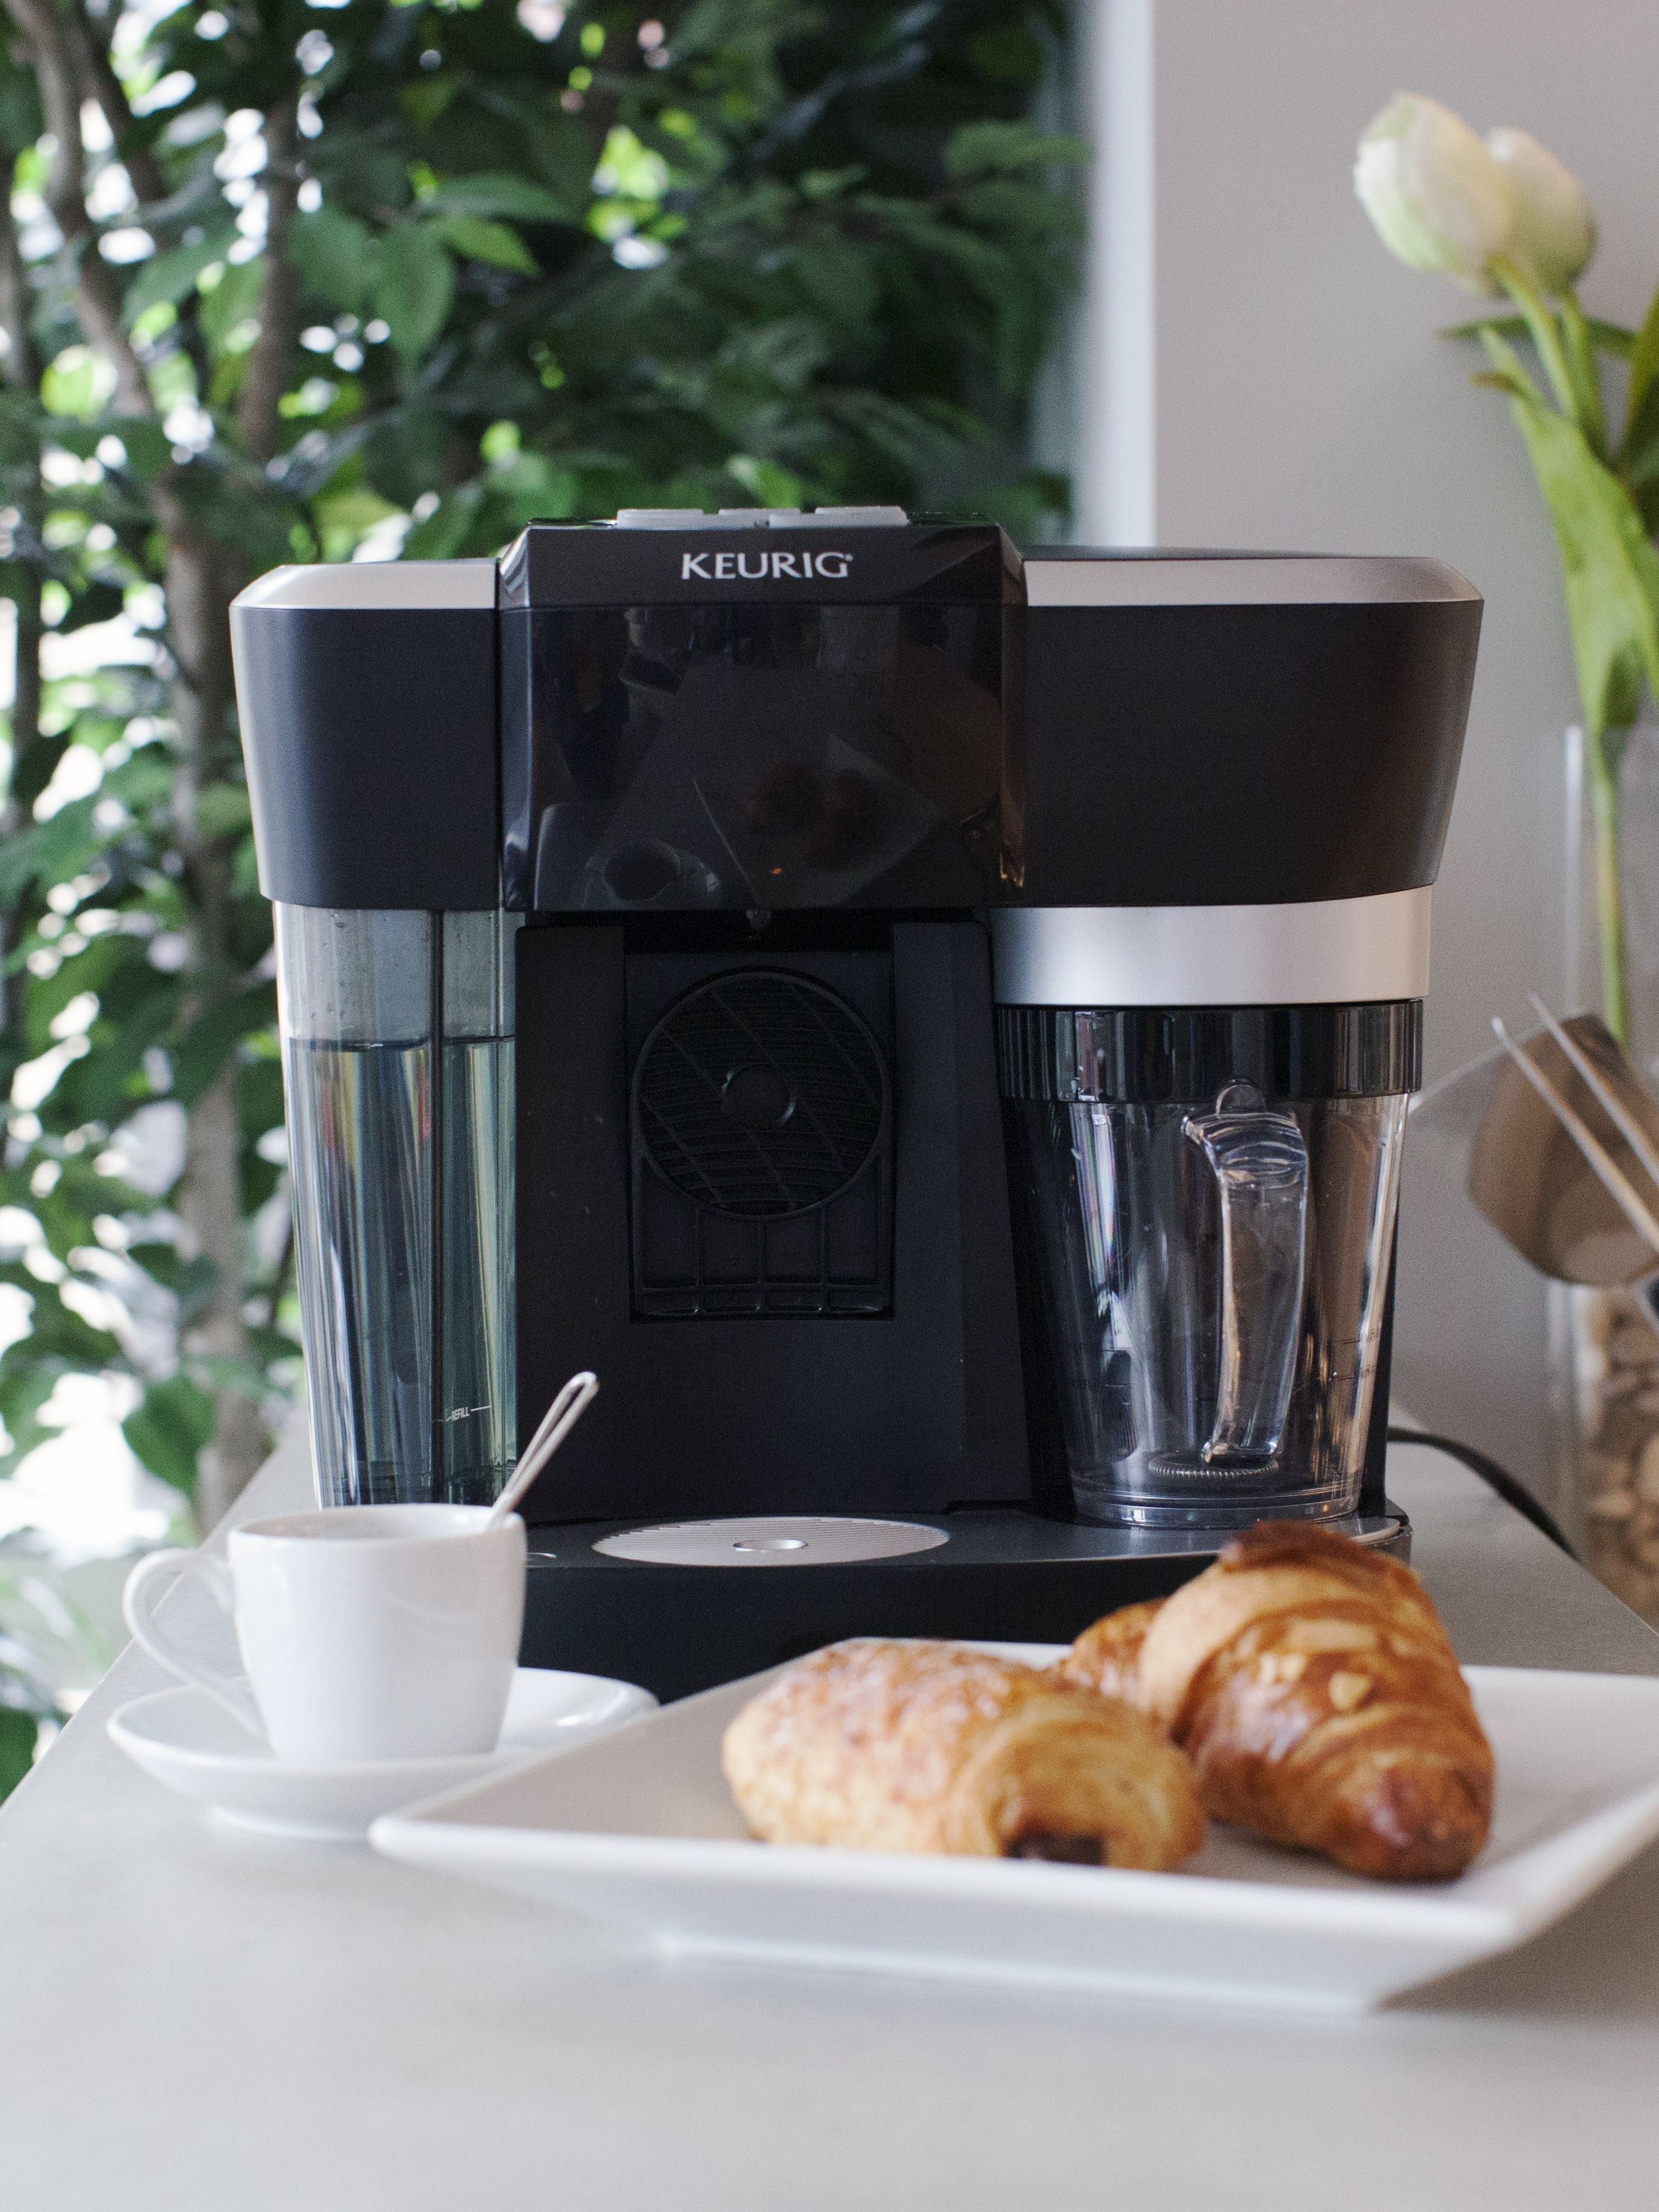 The simplicity of the Keurig Rivo System technology